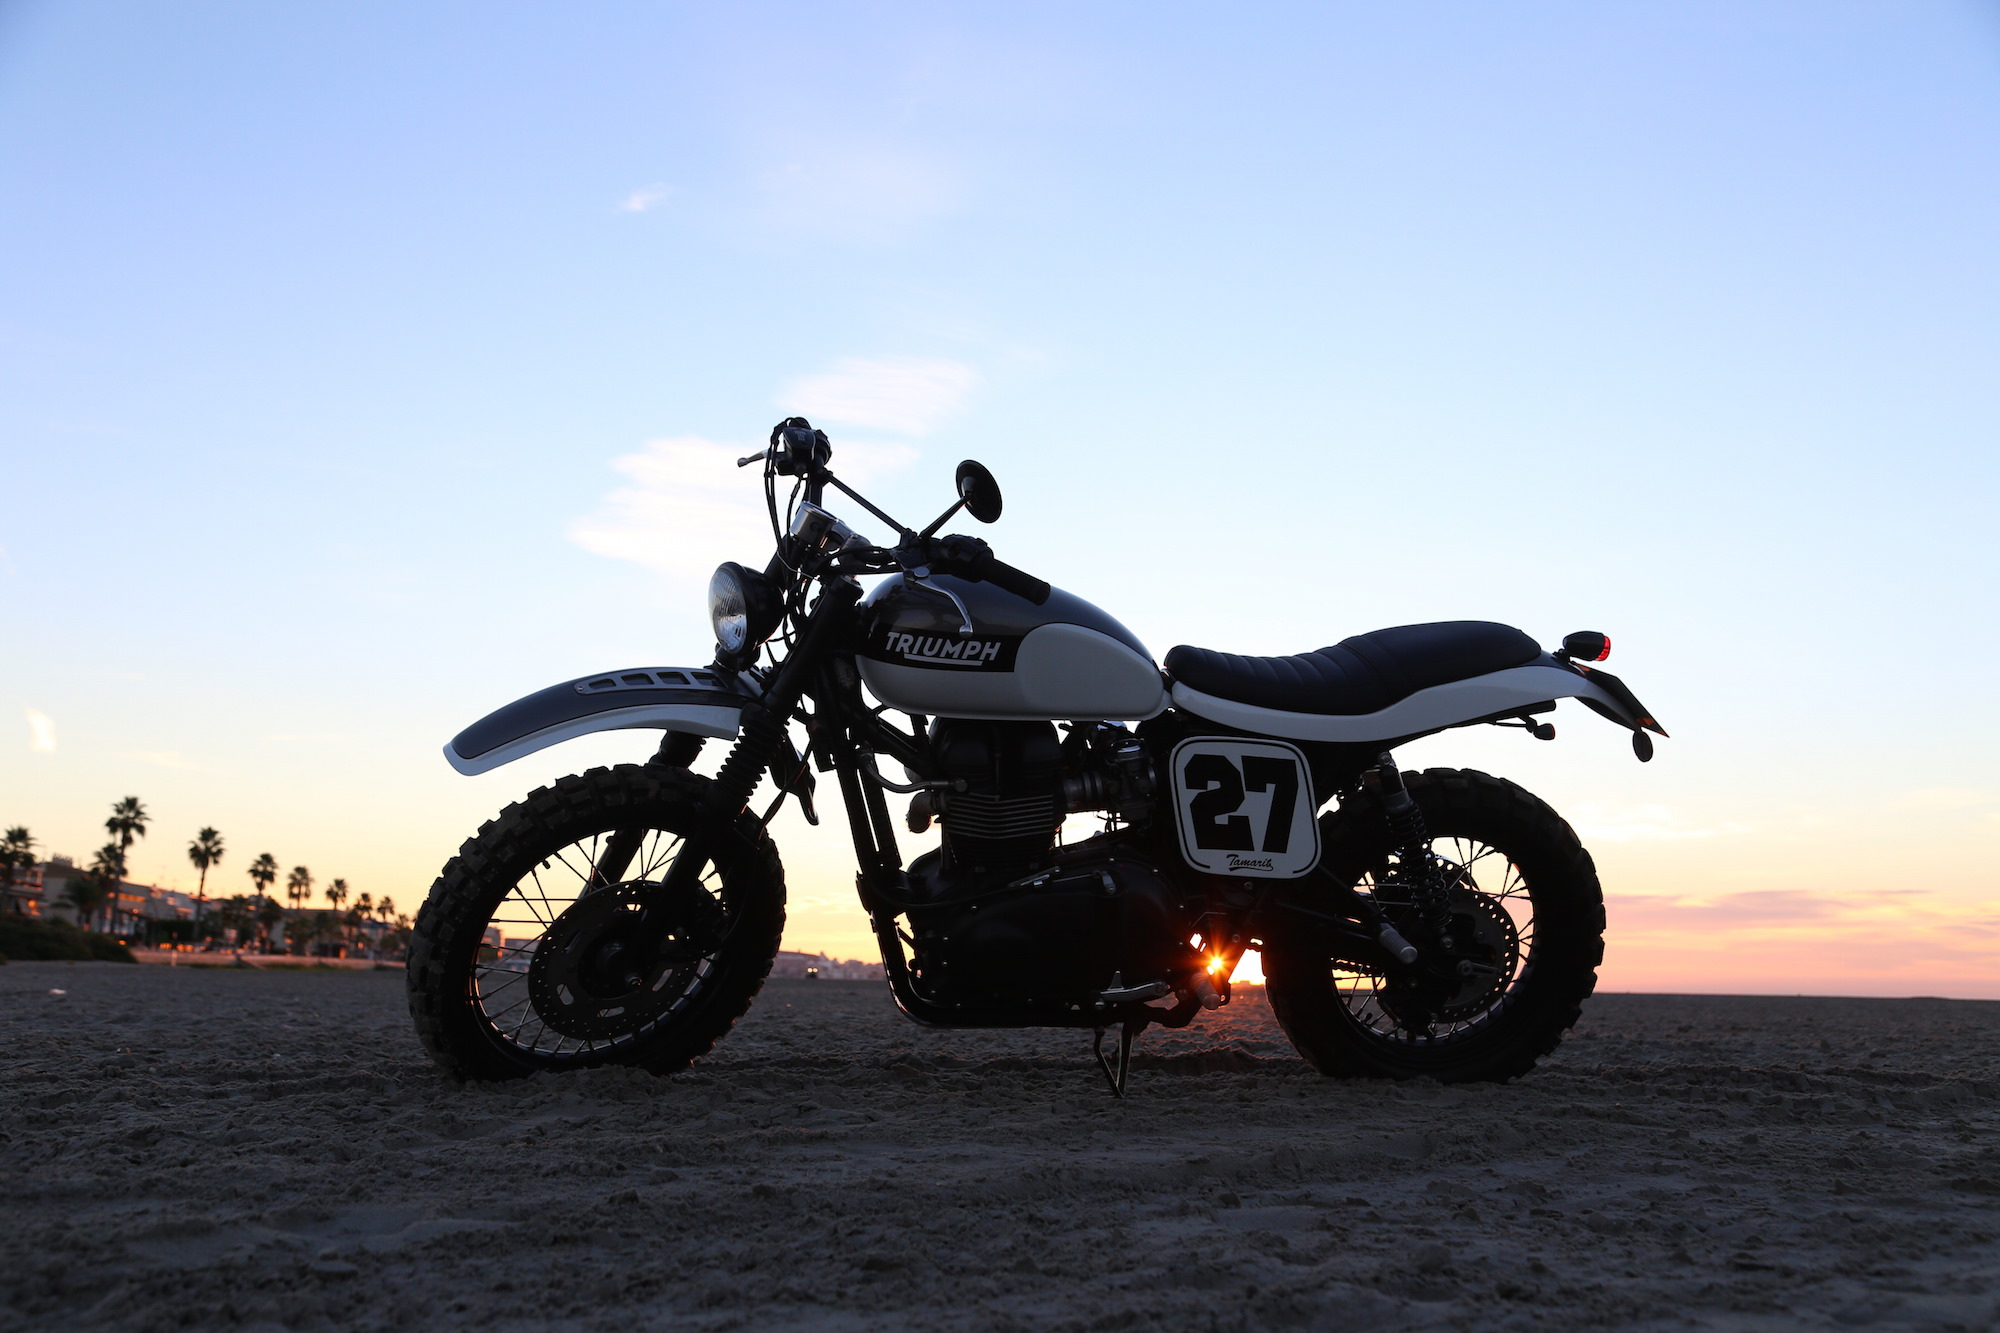 Triumph Scrambler by Tamarit Spanish Motorcycles 4